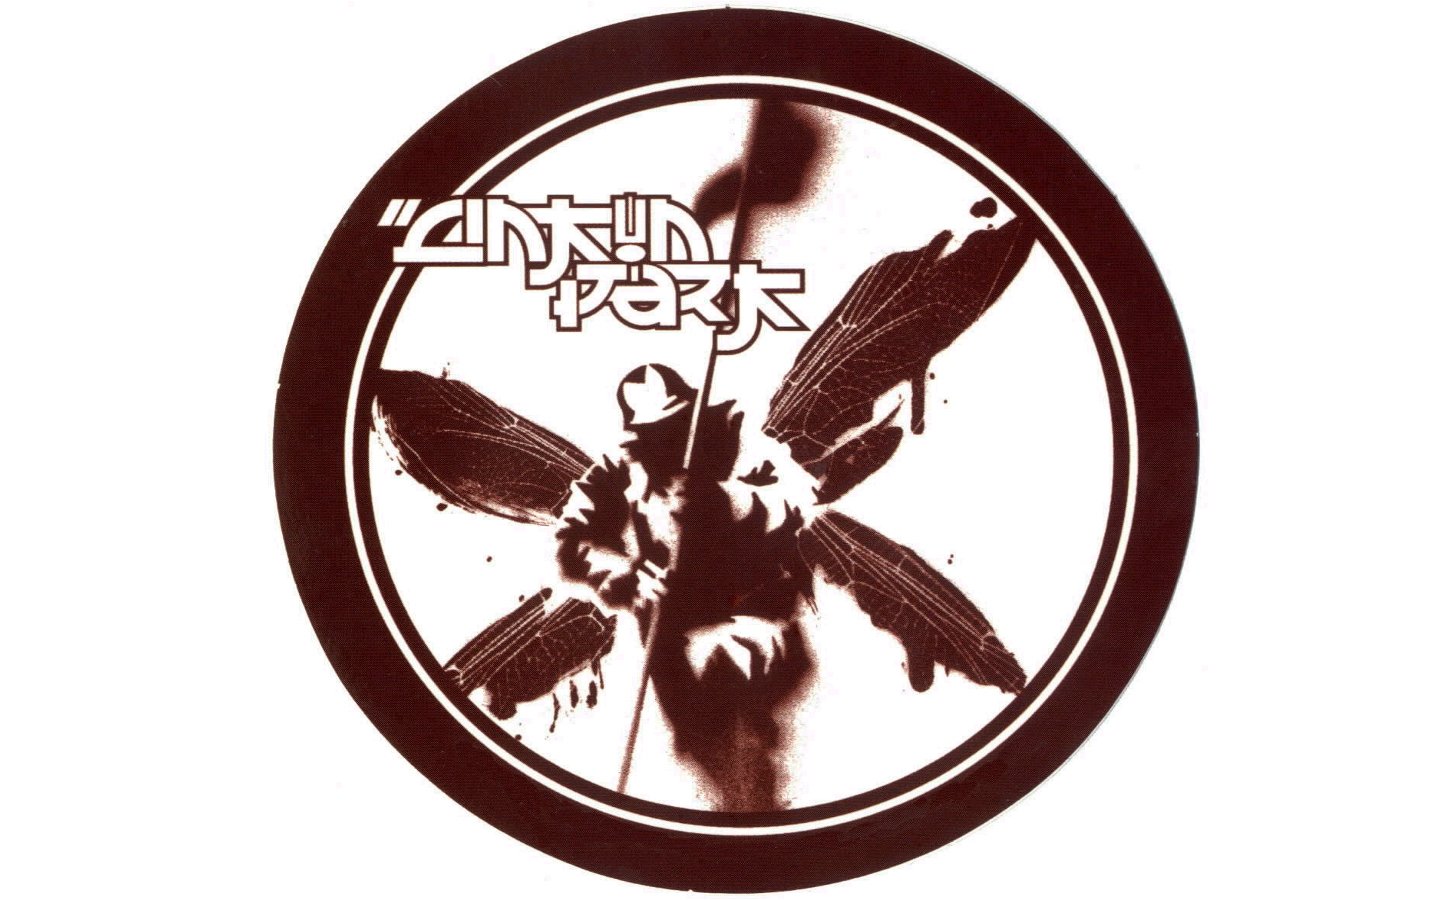 Hybrid Theory Wallpaper Linkin Park Hybrid Theory Png